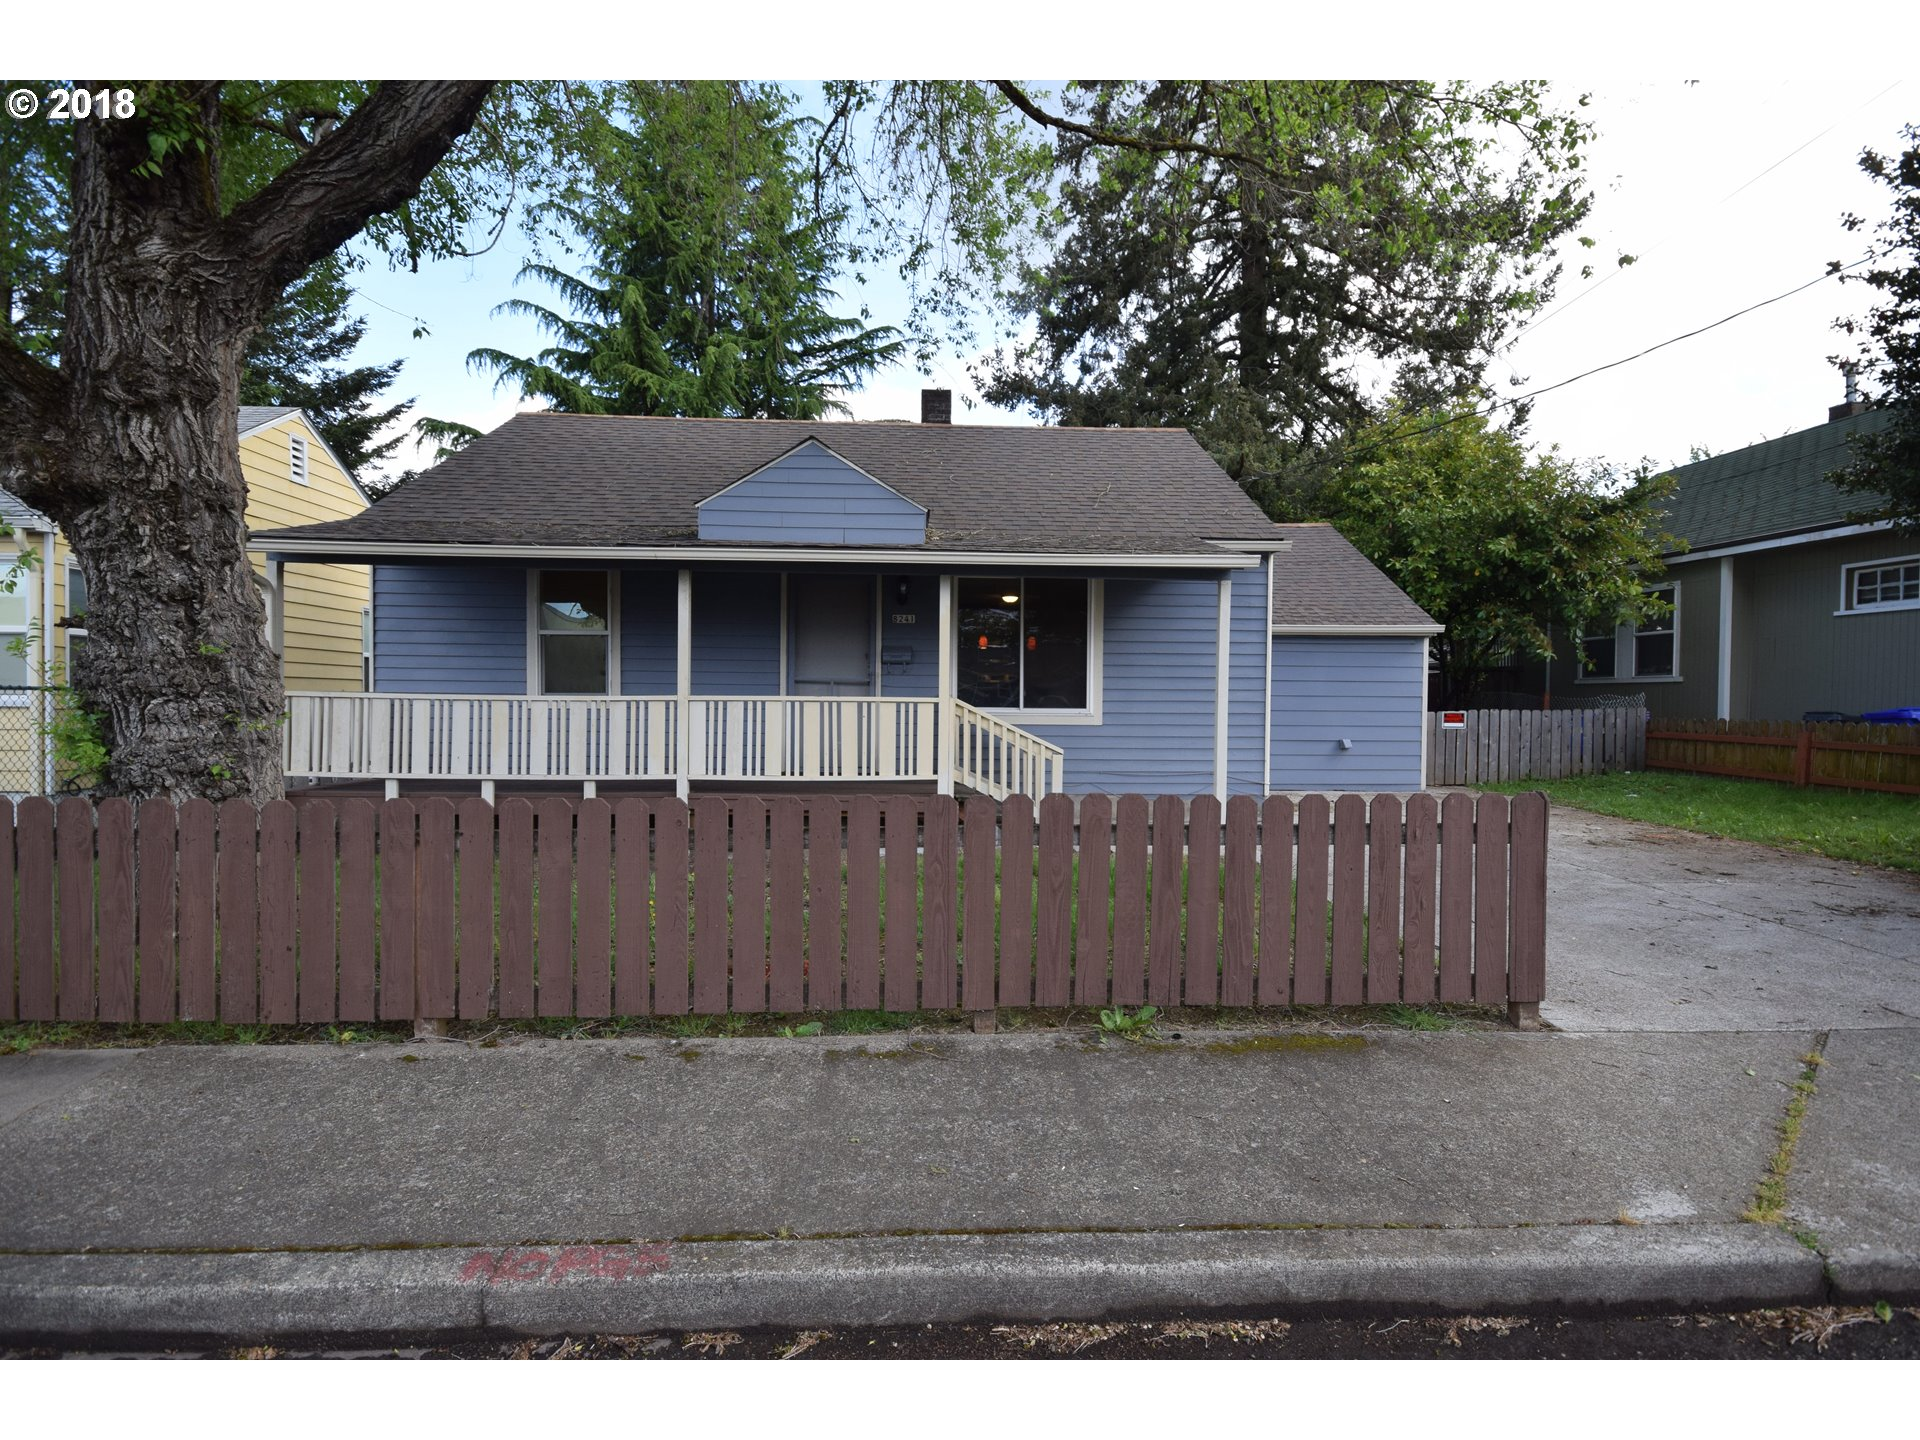 984 sq. ft 3 bedrooms 1 bathrooms  House For Sale, Portland, OR